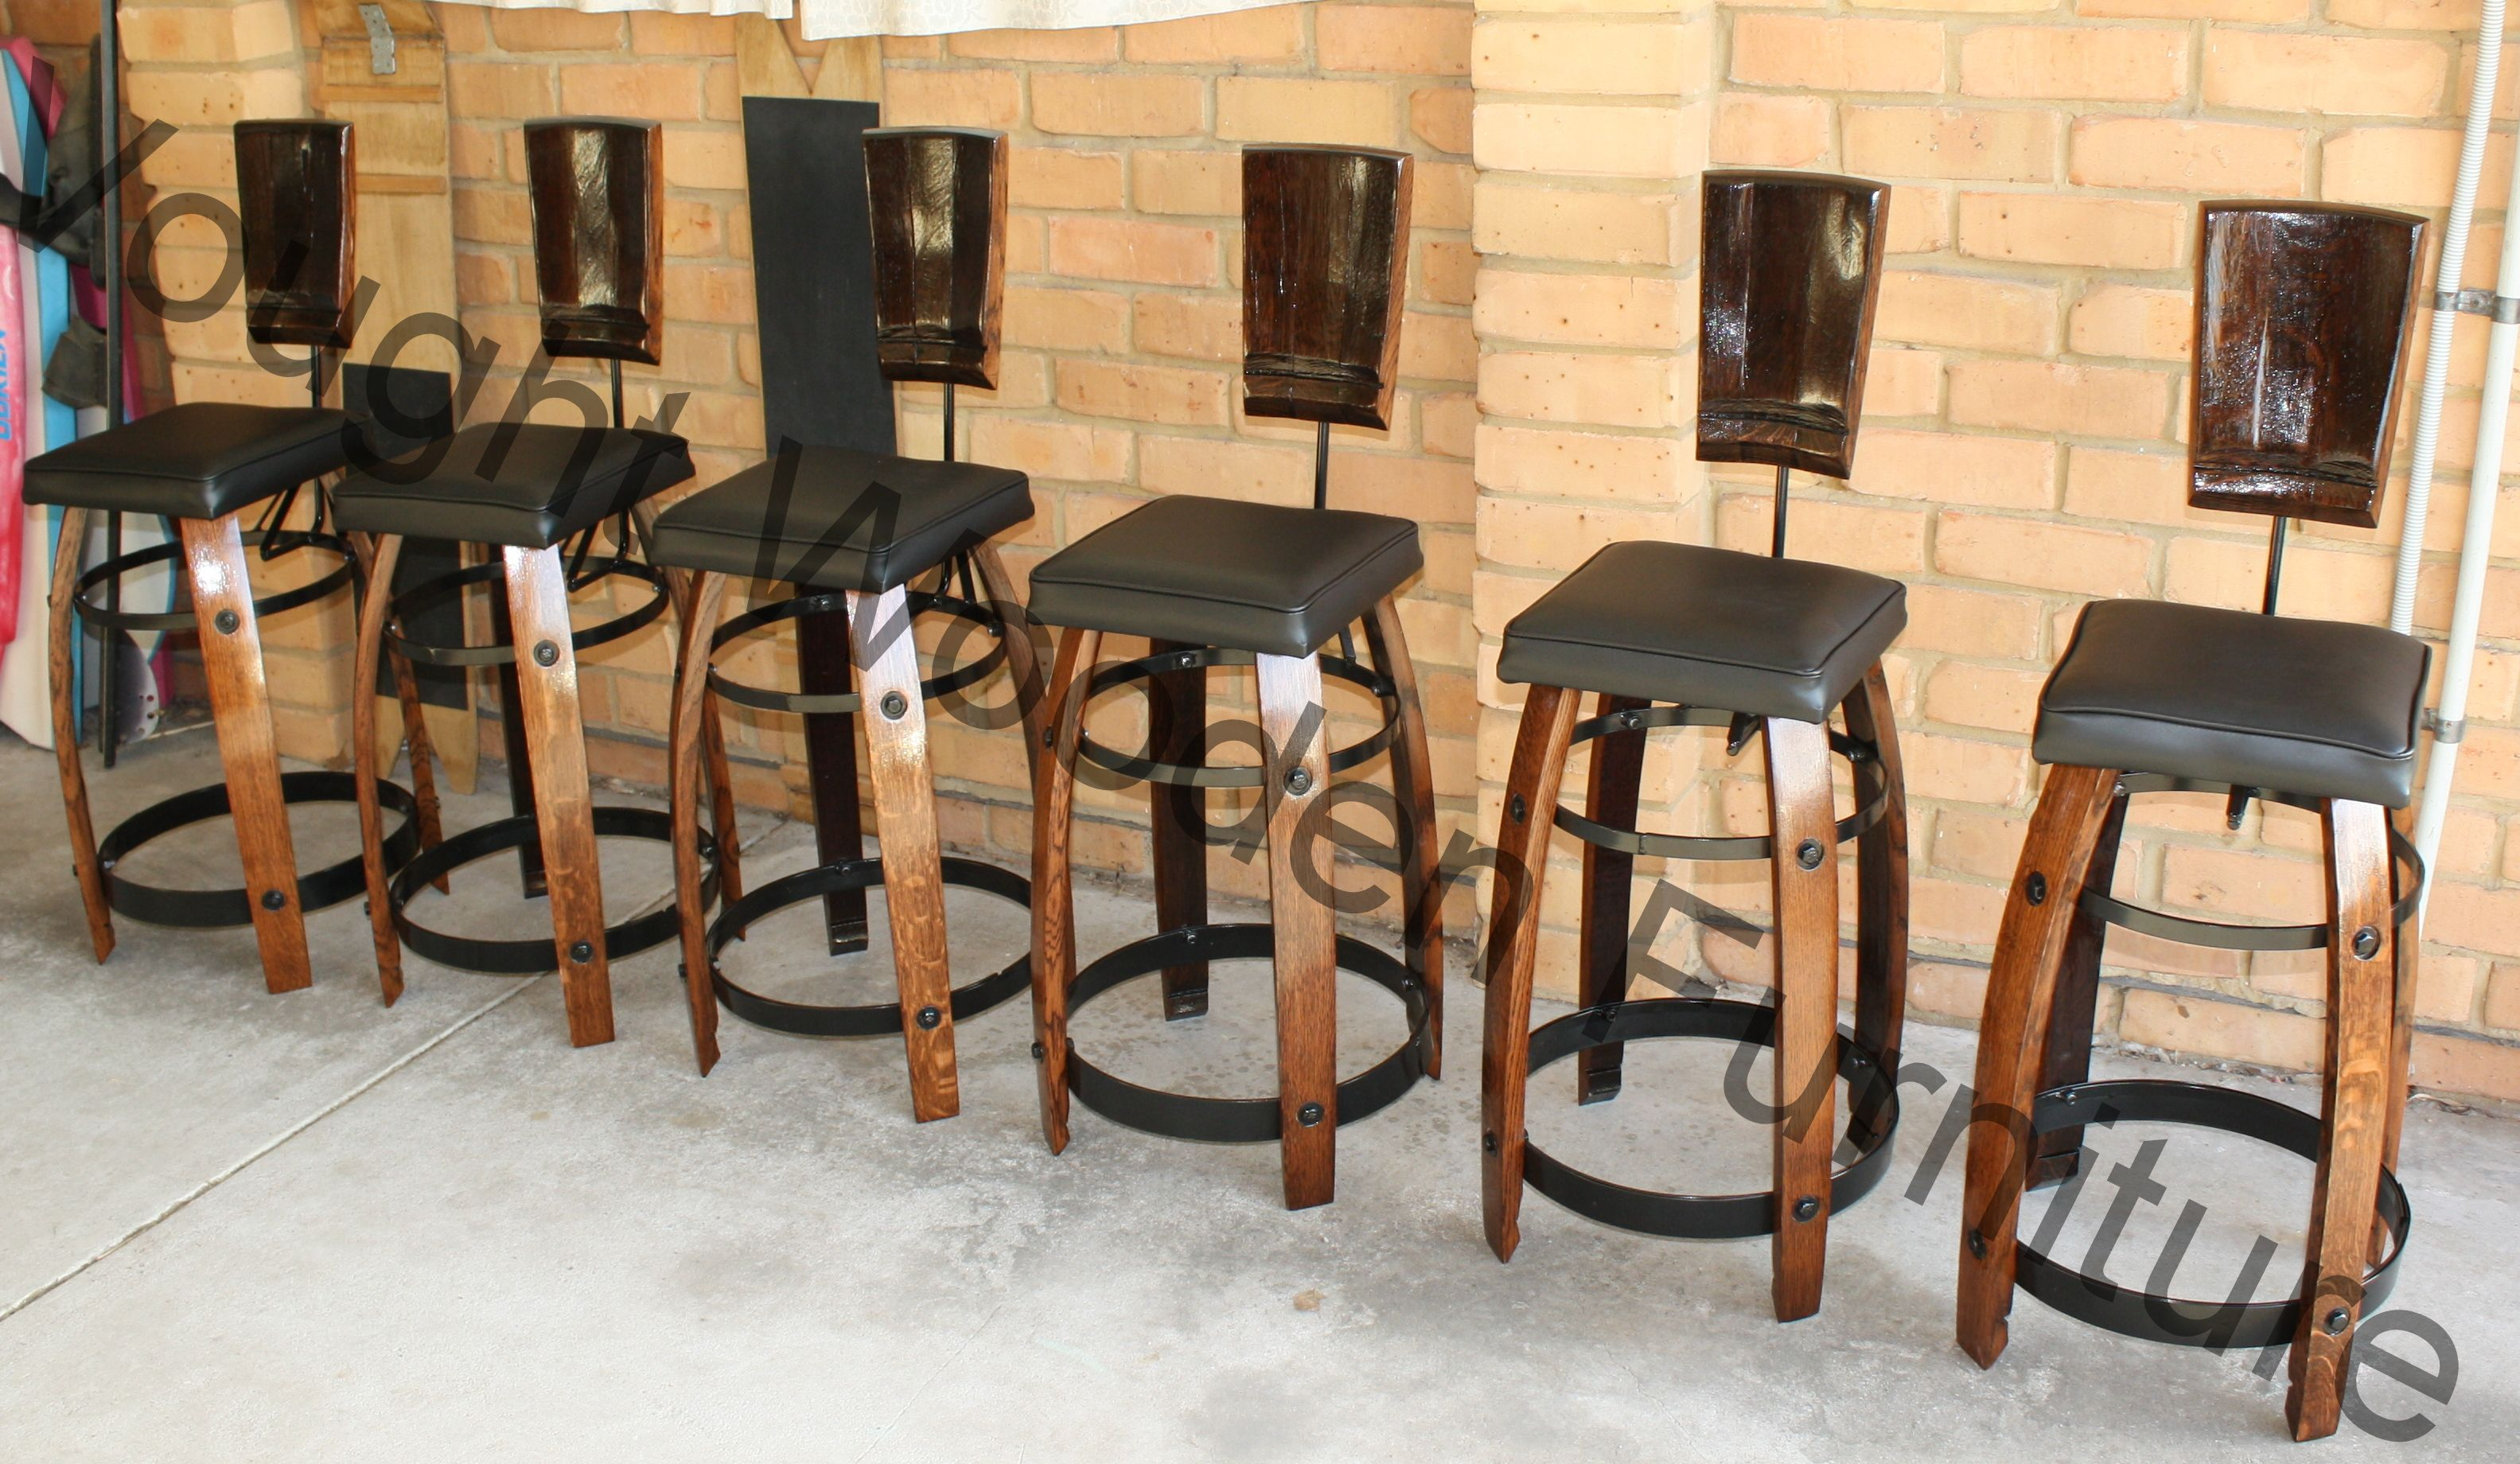 Bar Stools Legs Of The Chairs Are Built From Wine Barrel Staves